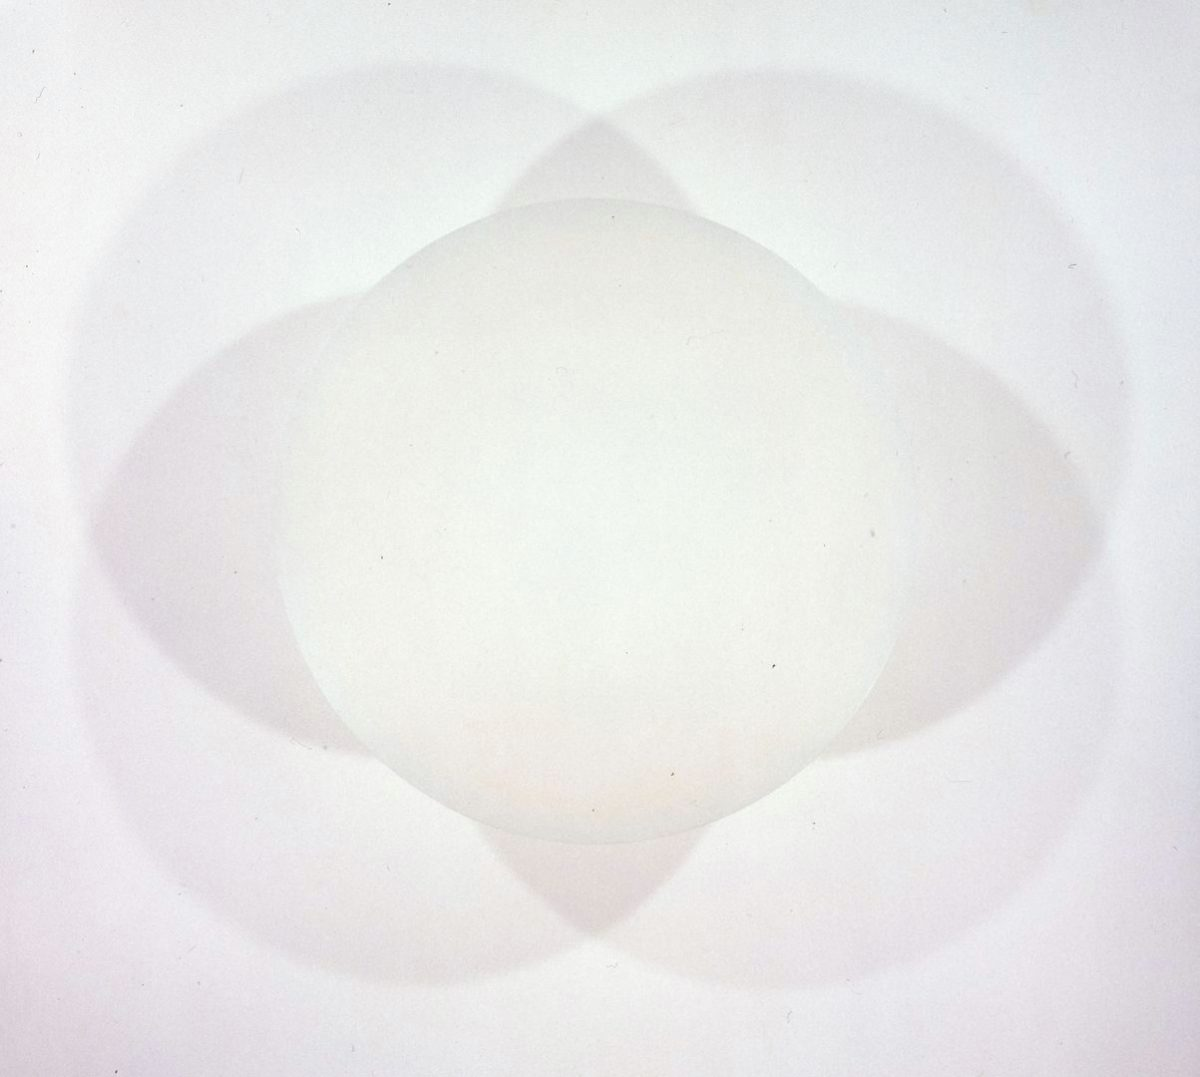 Untitled, Robert Irwin, 48 inches in diameter, spray enamel on aluminum. A photo of an ivory disc casting shadows on the wall behind it. Light shines from below causing four overlapping shadows to appear around the disc. The shadows are pale gray and deepen slightly when overlapped. The shadows and disc create one large intricate shape when looked at together or five separate simple shapes when viewed individually.